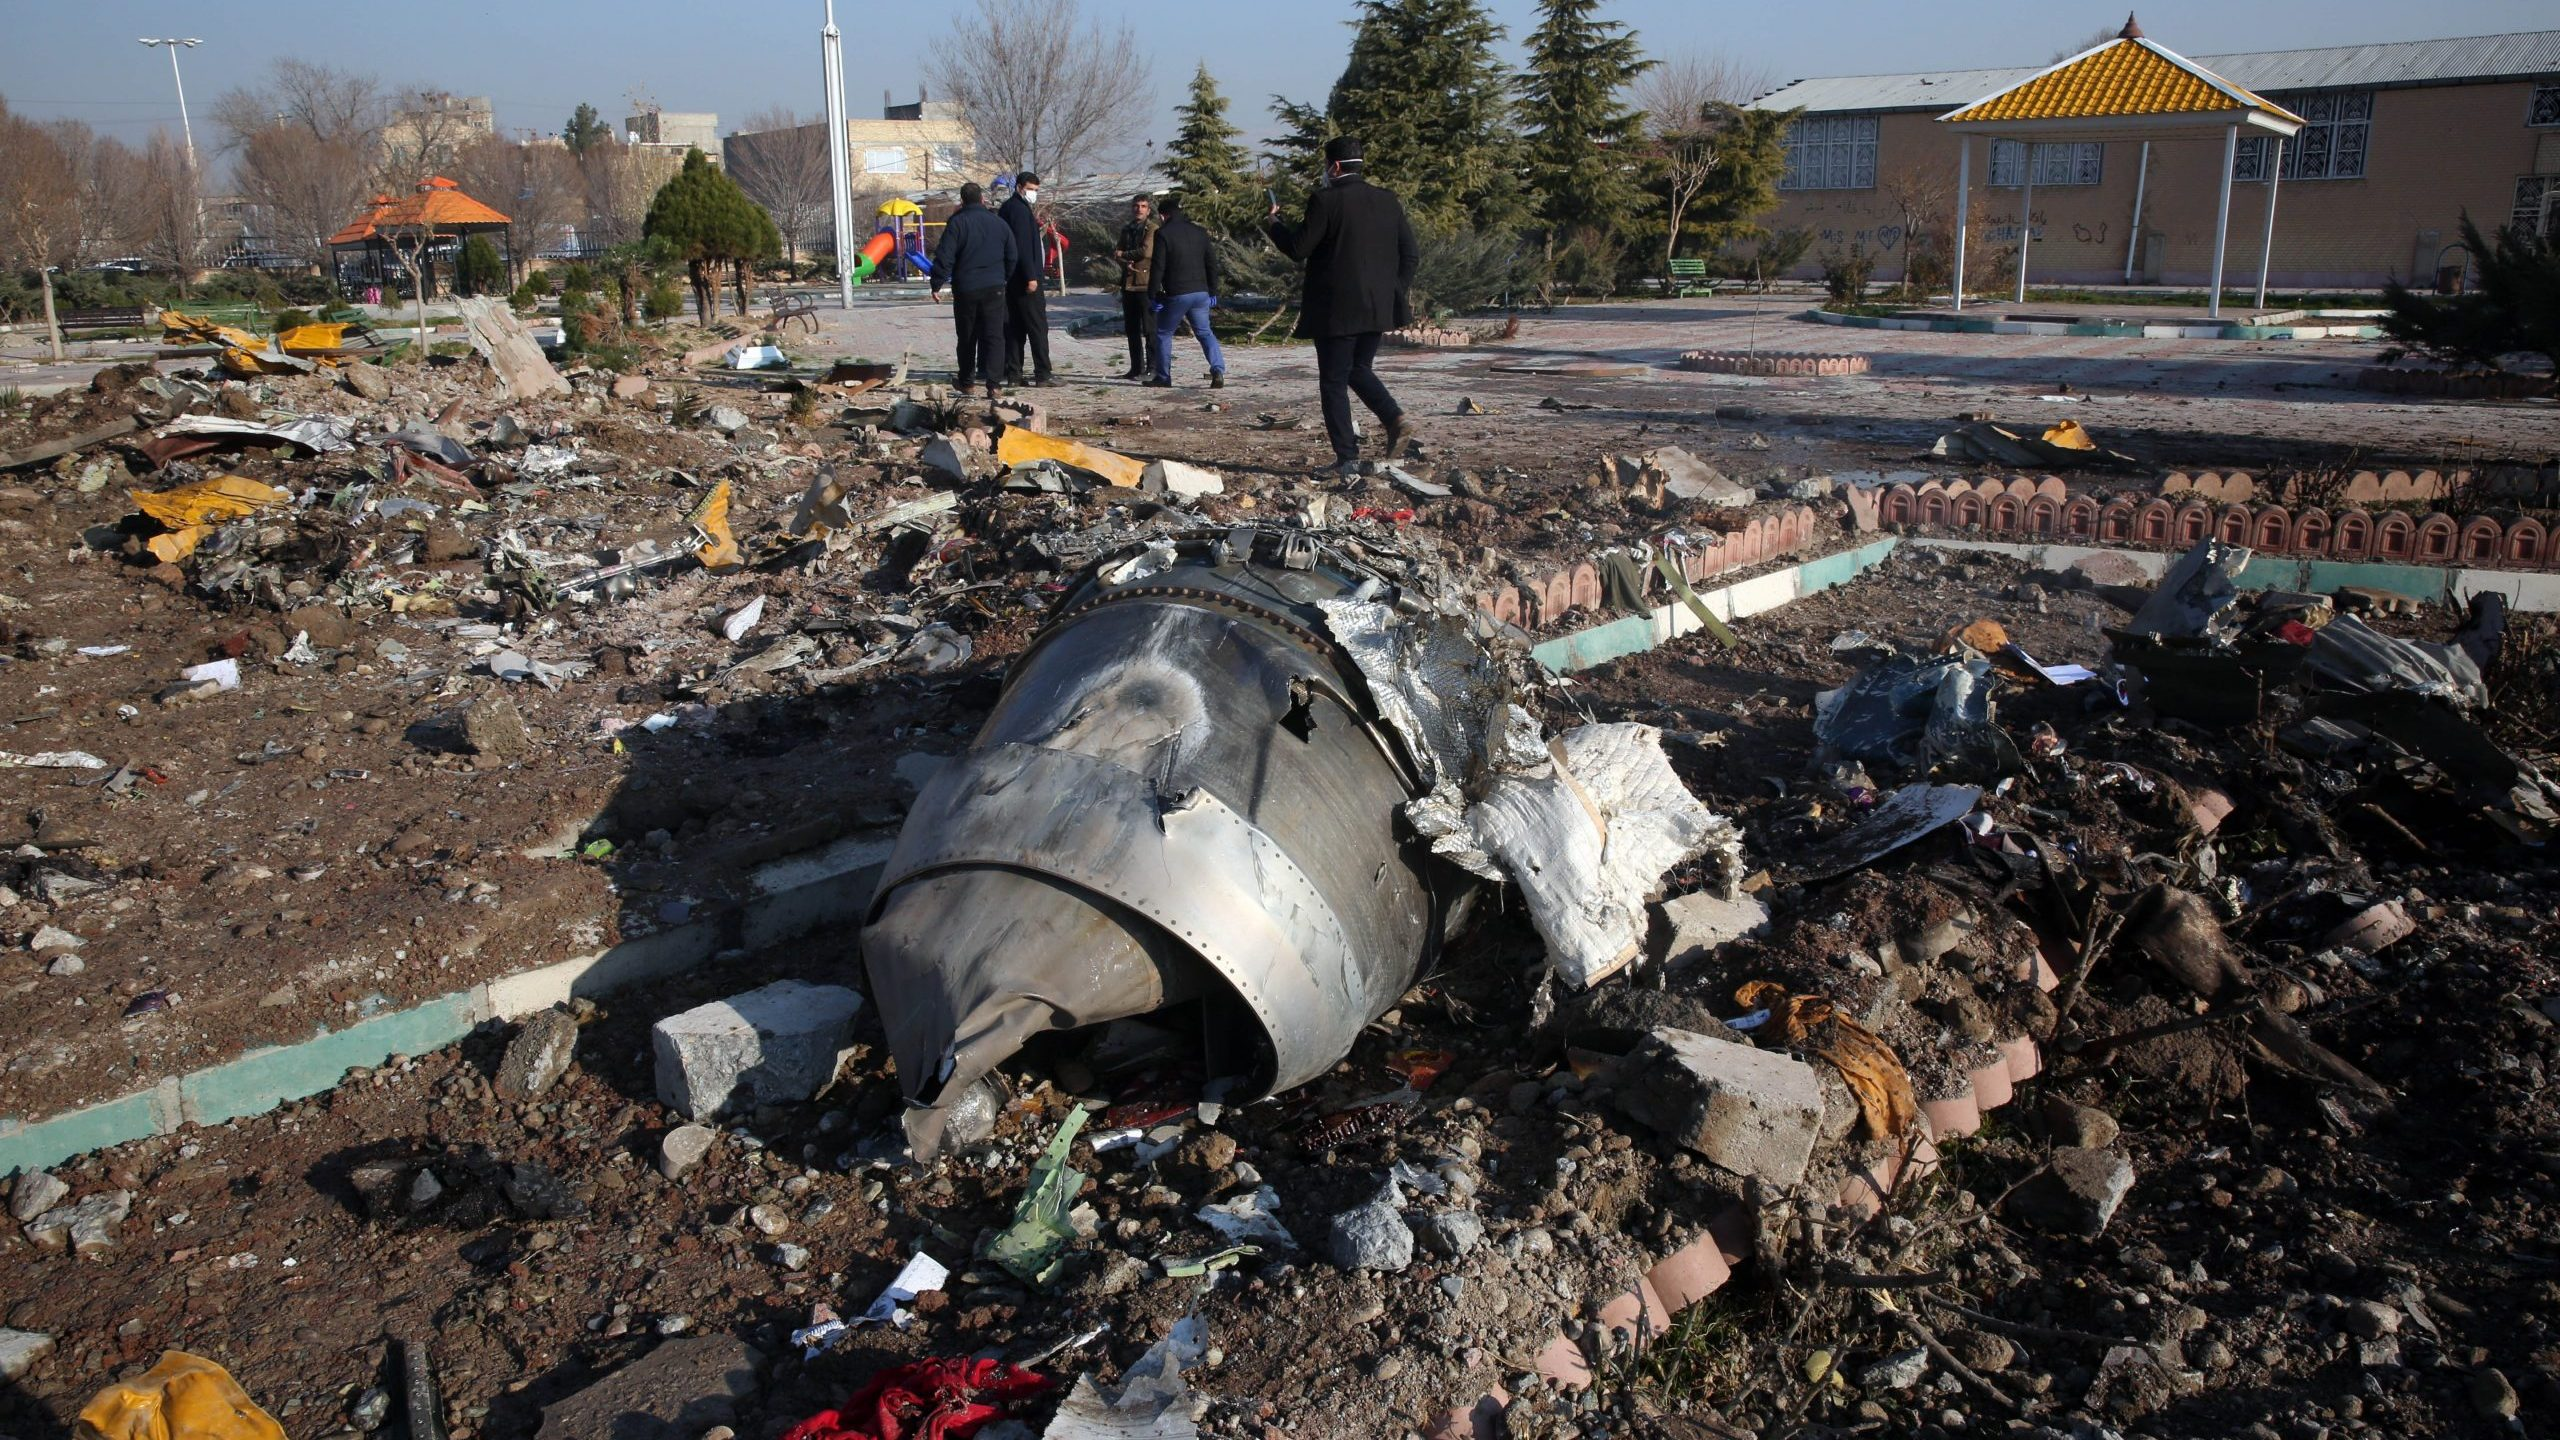 Rescue teams work amidst debris after a Ukrainian plane carrying 176 passengers crashed near Imam Khomeini airport in the Iranian capital Tehran early in the morning on Jan. 8, 2020, killing everyone on board. (Credit: AFP via Getty Images)